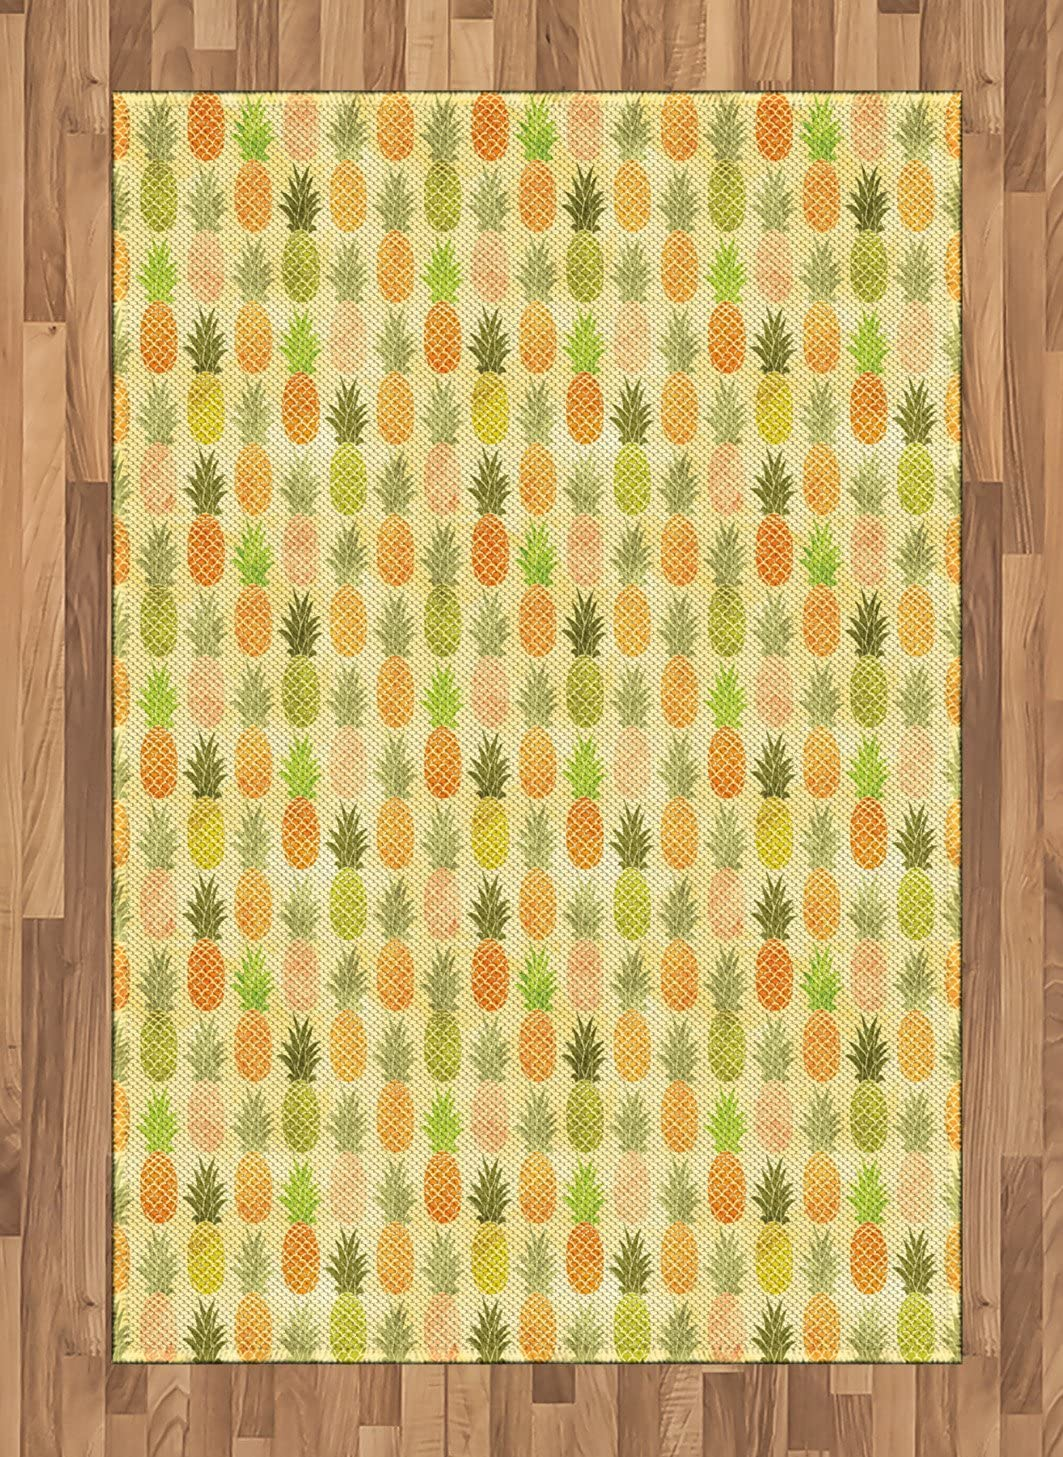 Ambesonne Vintage Area Rug, Tropical Tasty Fruit Exotic Hawaiian Holiday Theme Illustration with Scales Pattern, Flat Woven Accent Rug for Living Room Bedroom Dining Room, 4' X 5.7', Multicolor